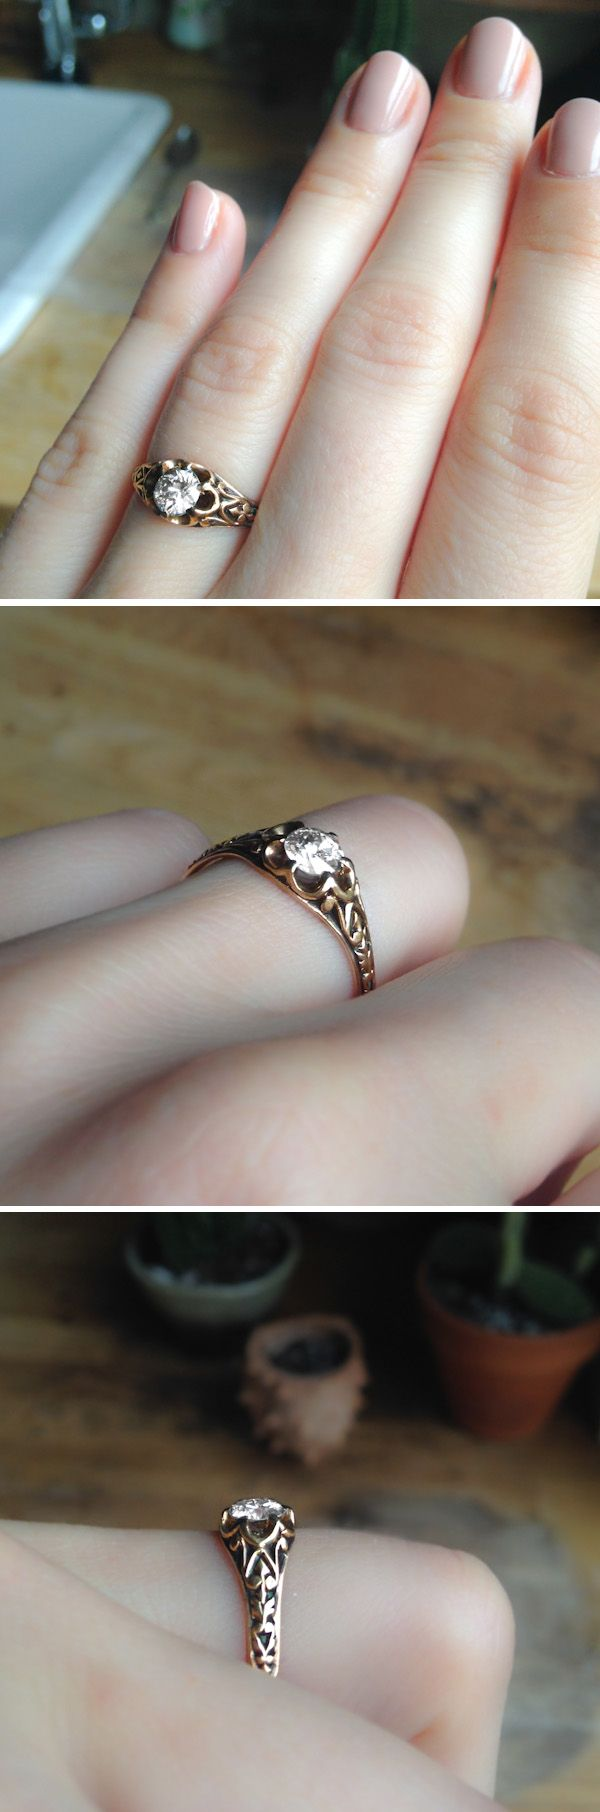 CLASSIC ANTIQUE VICTORIAN BUTTERCUP GOLD ENGAGEMENT RING. Simple but beautiful!